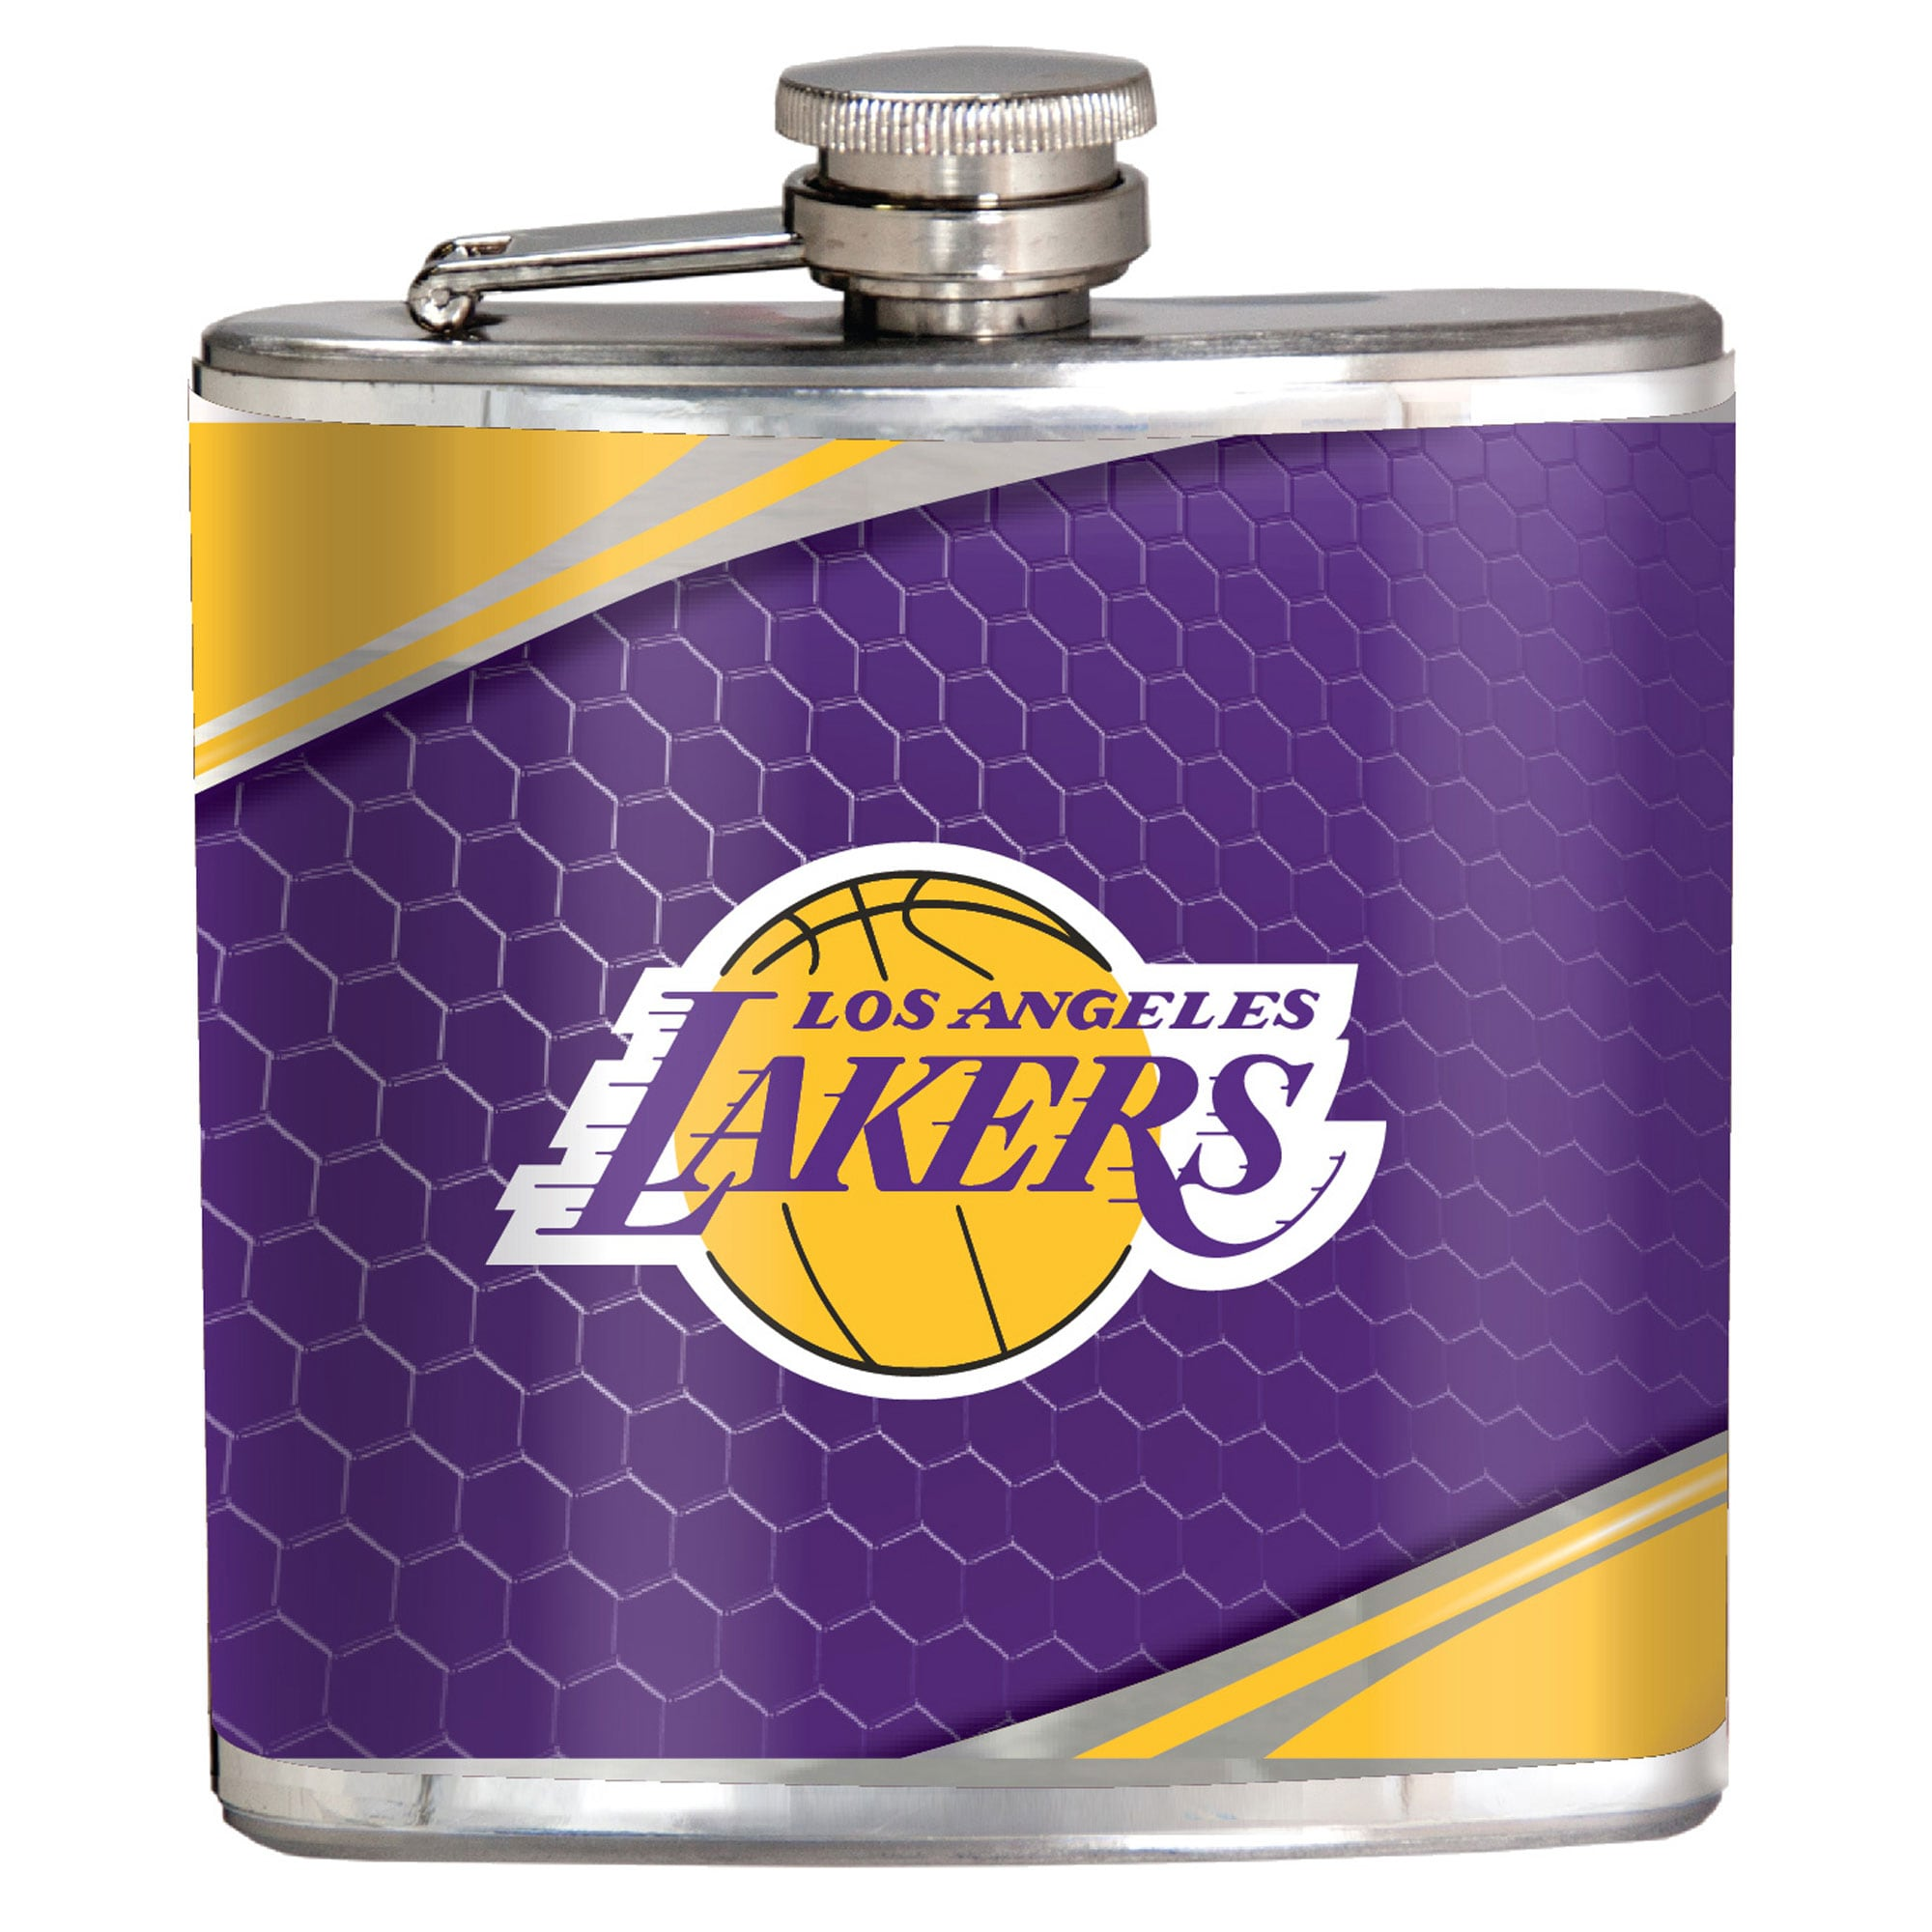 Los Angeles Lakers 6oz. Hip Flask